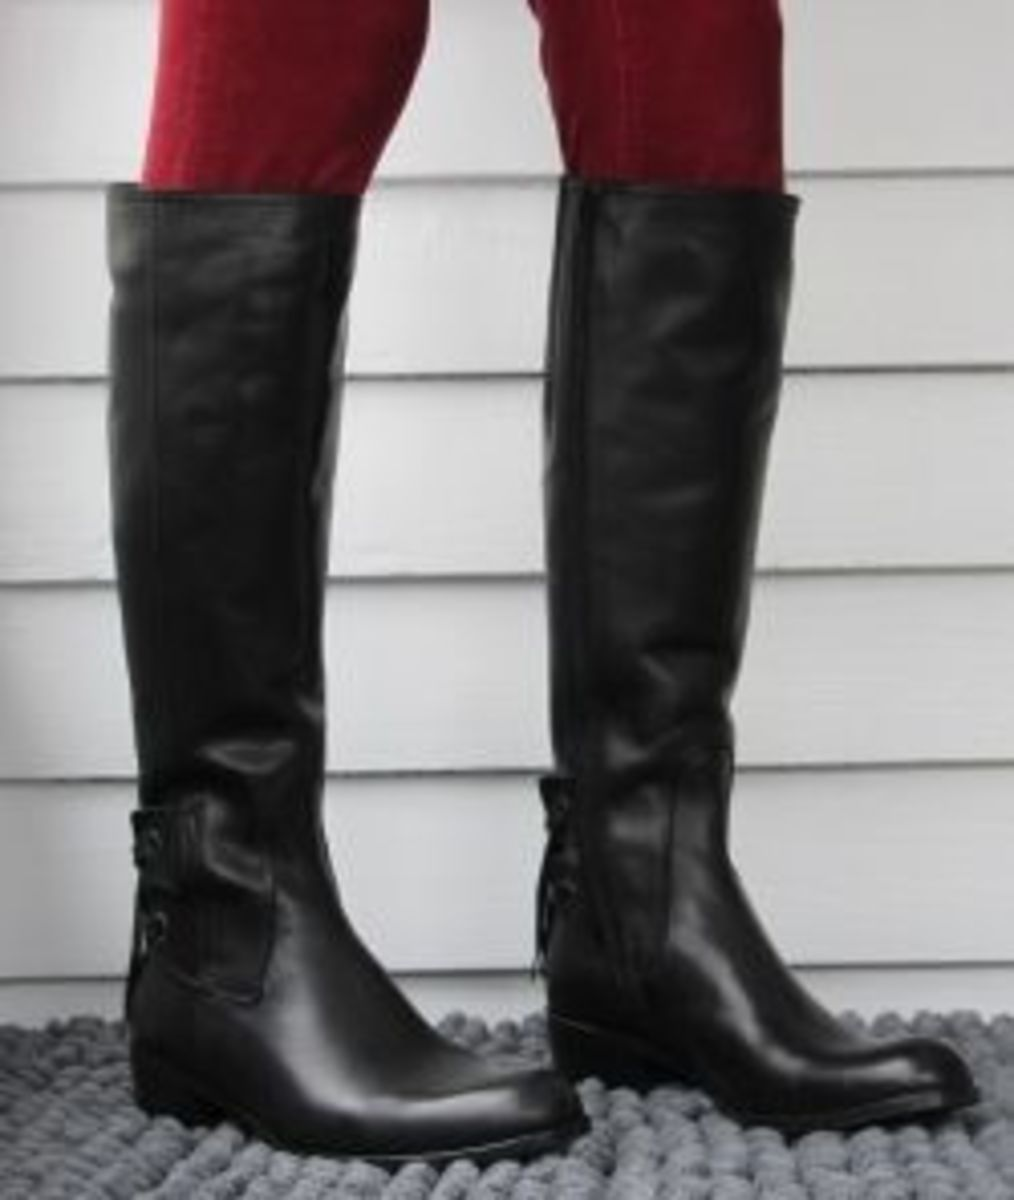 Narrow Calf Boots ~ Riding Boots